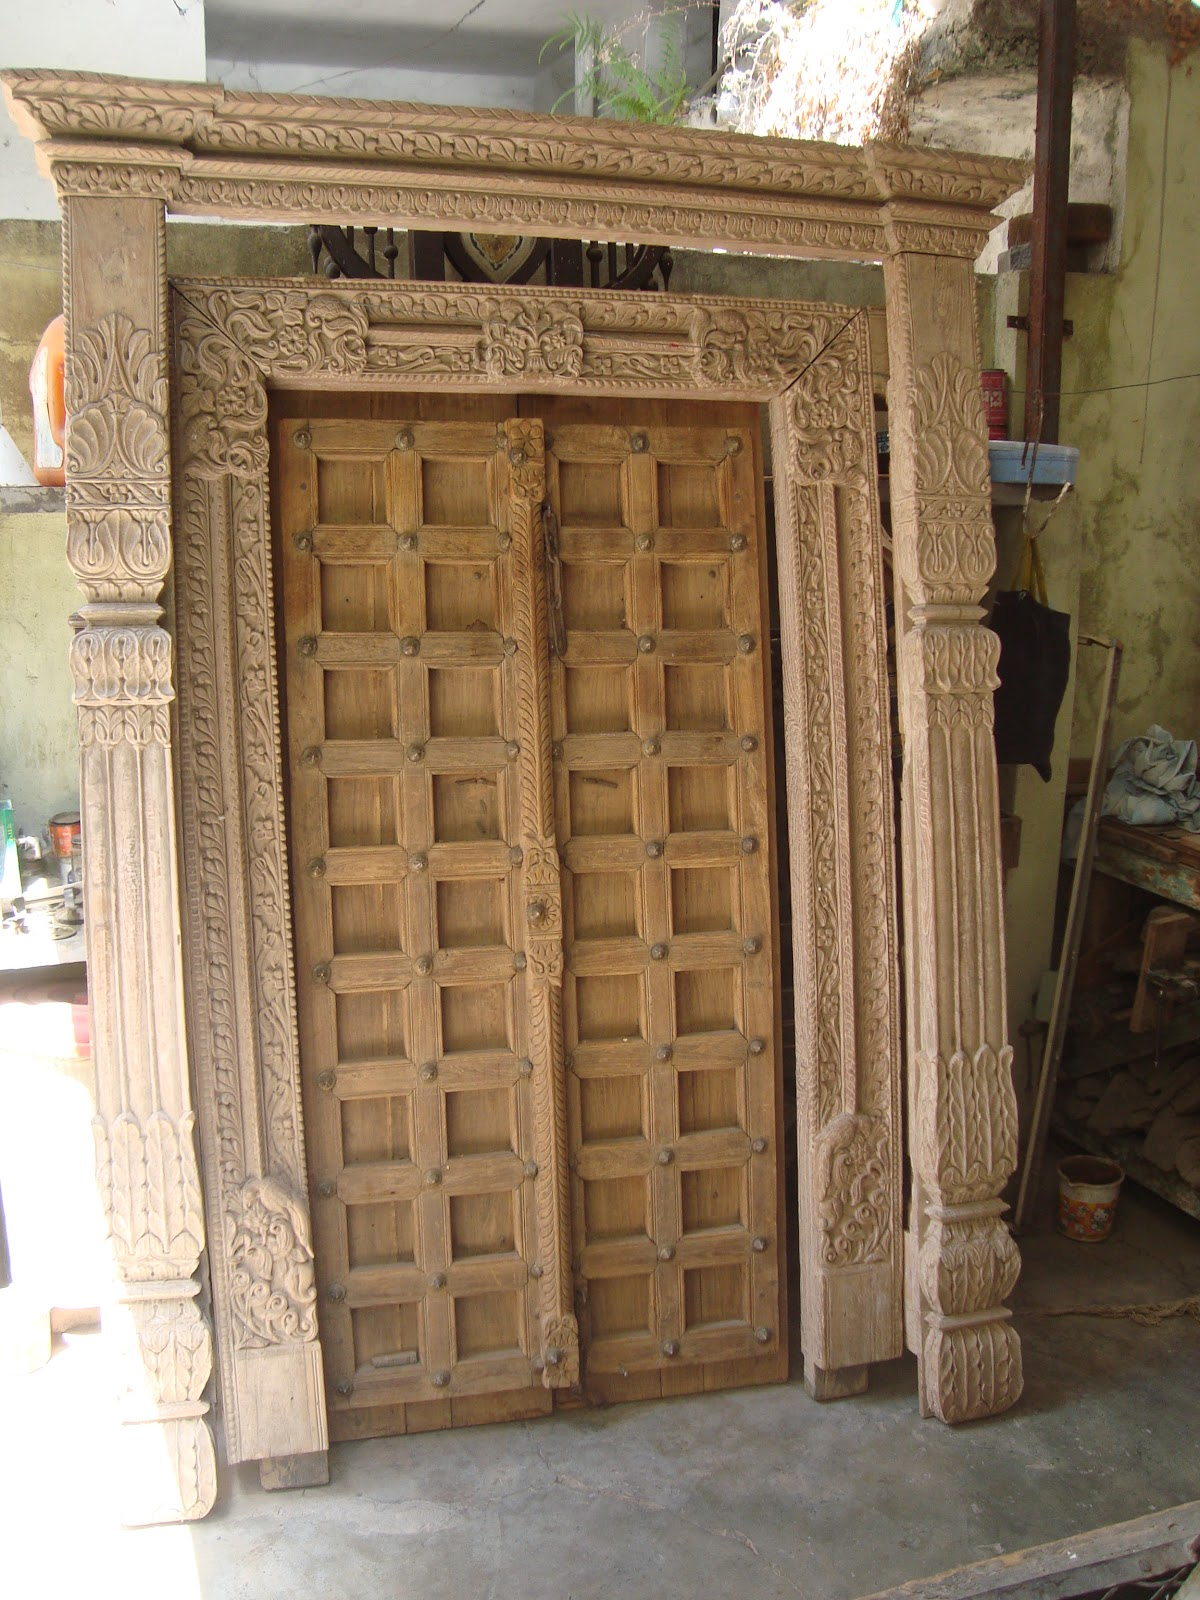 Wooden doors vintage wooden doors for sale for House entry doors sale